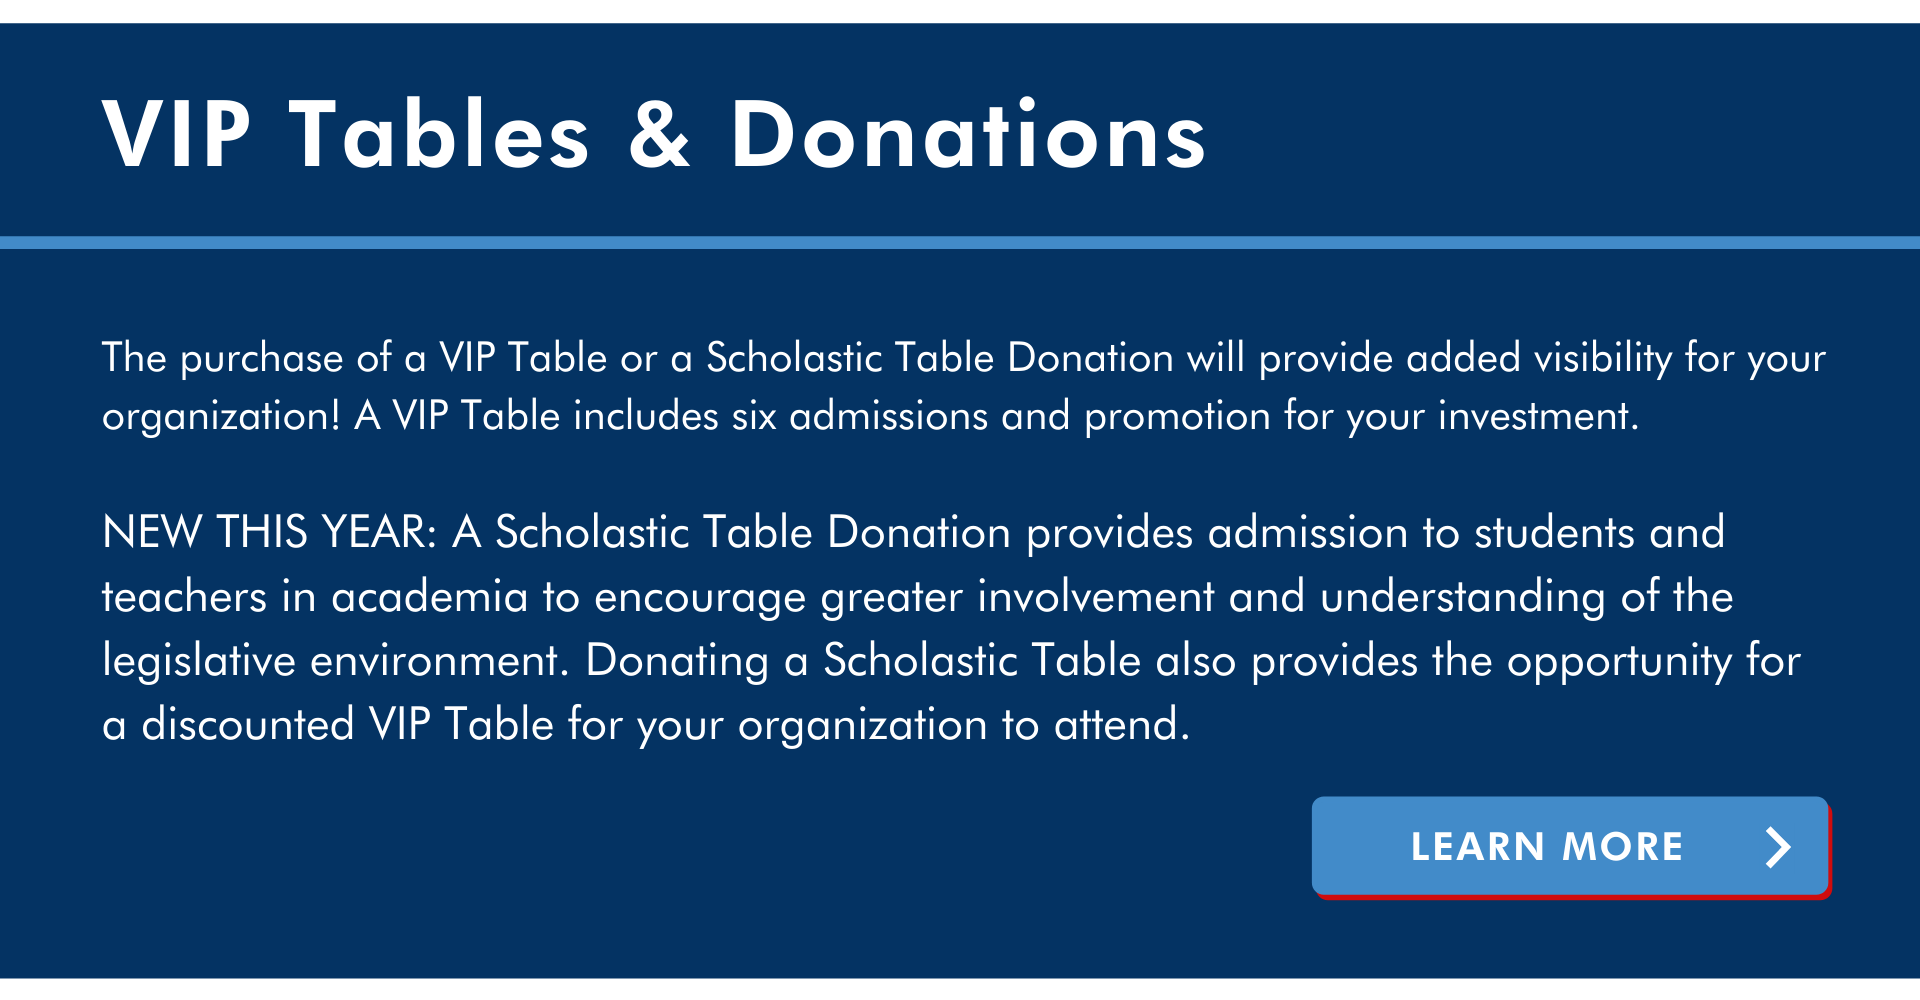 learn more button CTA call to action vip tables and donations The purchase of a VIP Table or a Scholastic Table Donation will provide added visibility for your organization! A VIP Table includes six admissions and promotion for your investment.  NEW THIS YEAR: A Scholastic Table Donation provides admission to students and teachers in academia to encourage greater involvement and understanding of the legislative environment. Donating a Scholastic Table also provides the opportunity for a discounted VIP Table for your organization to attend.